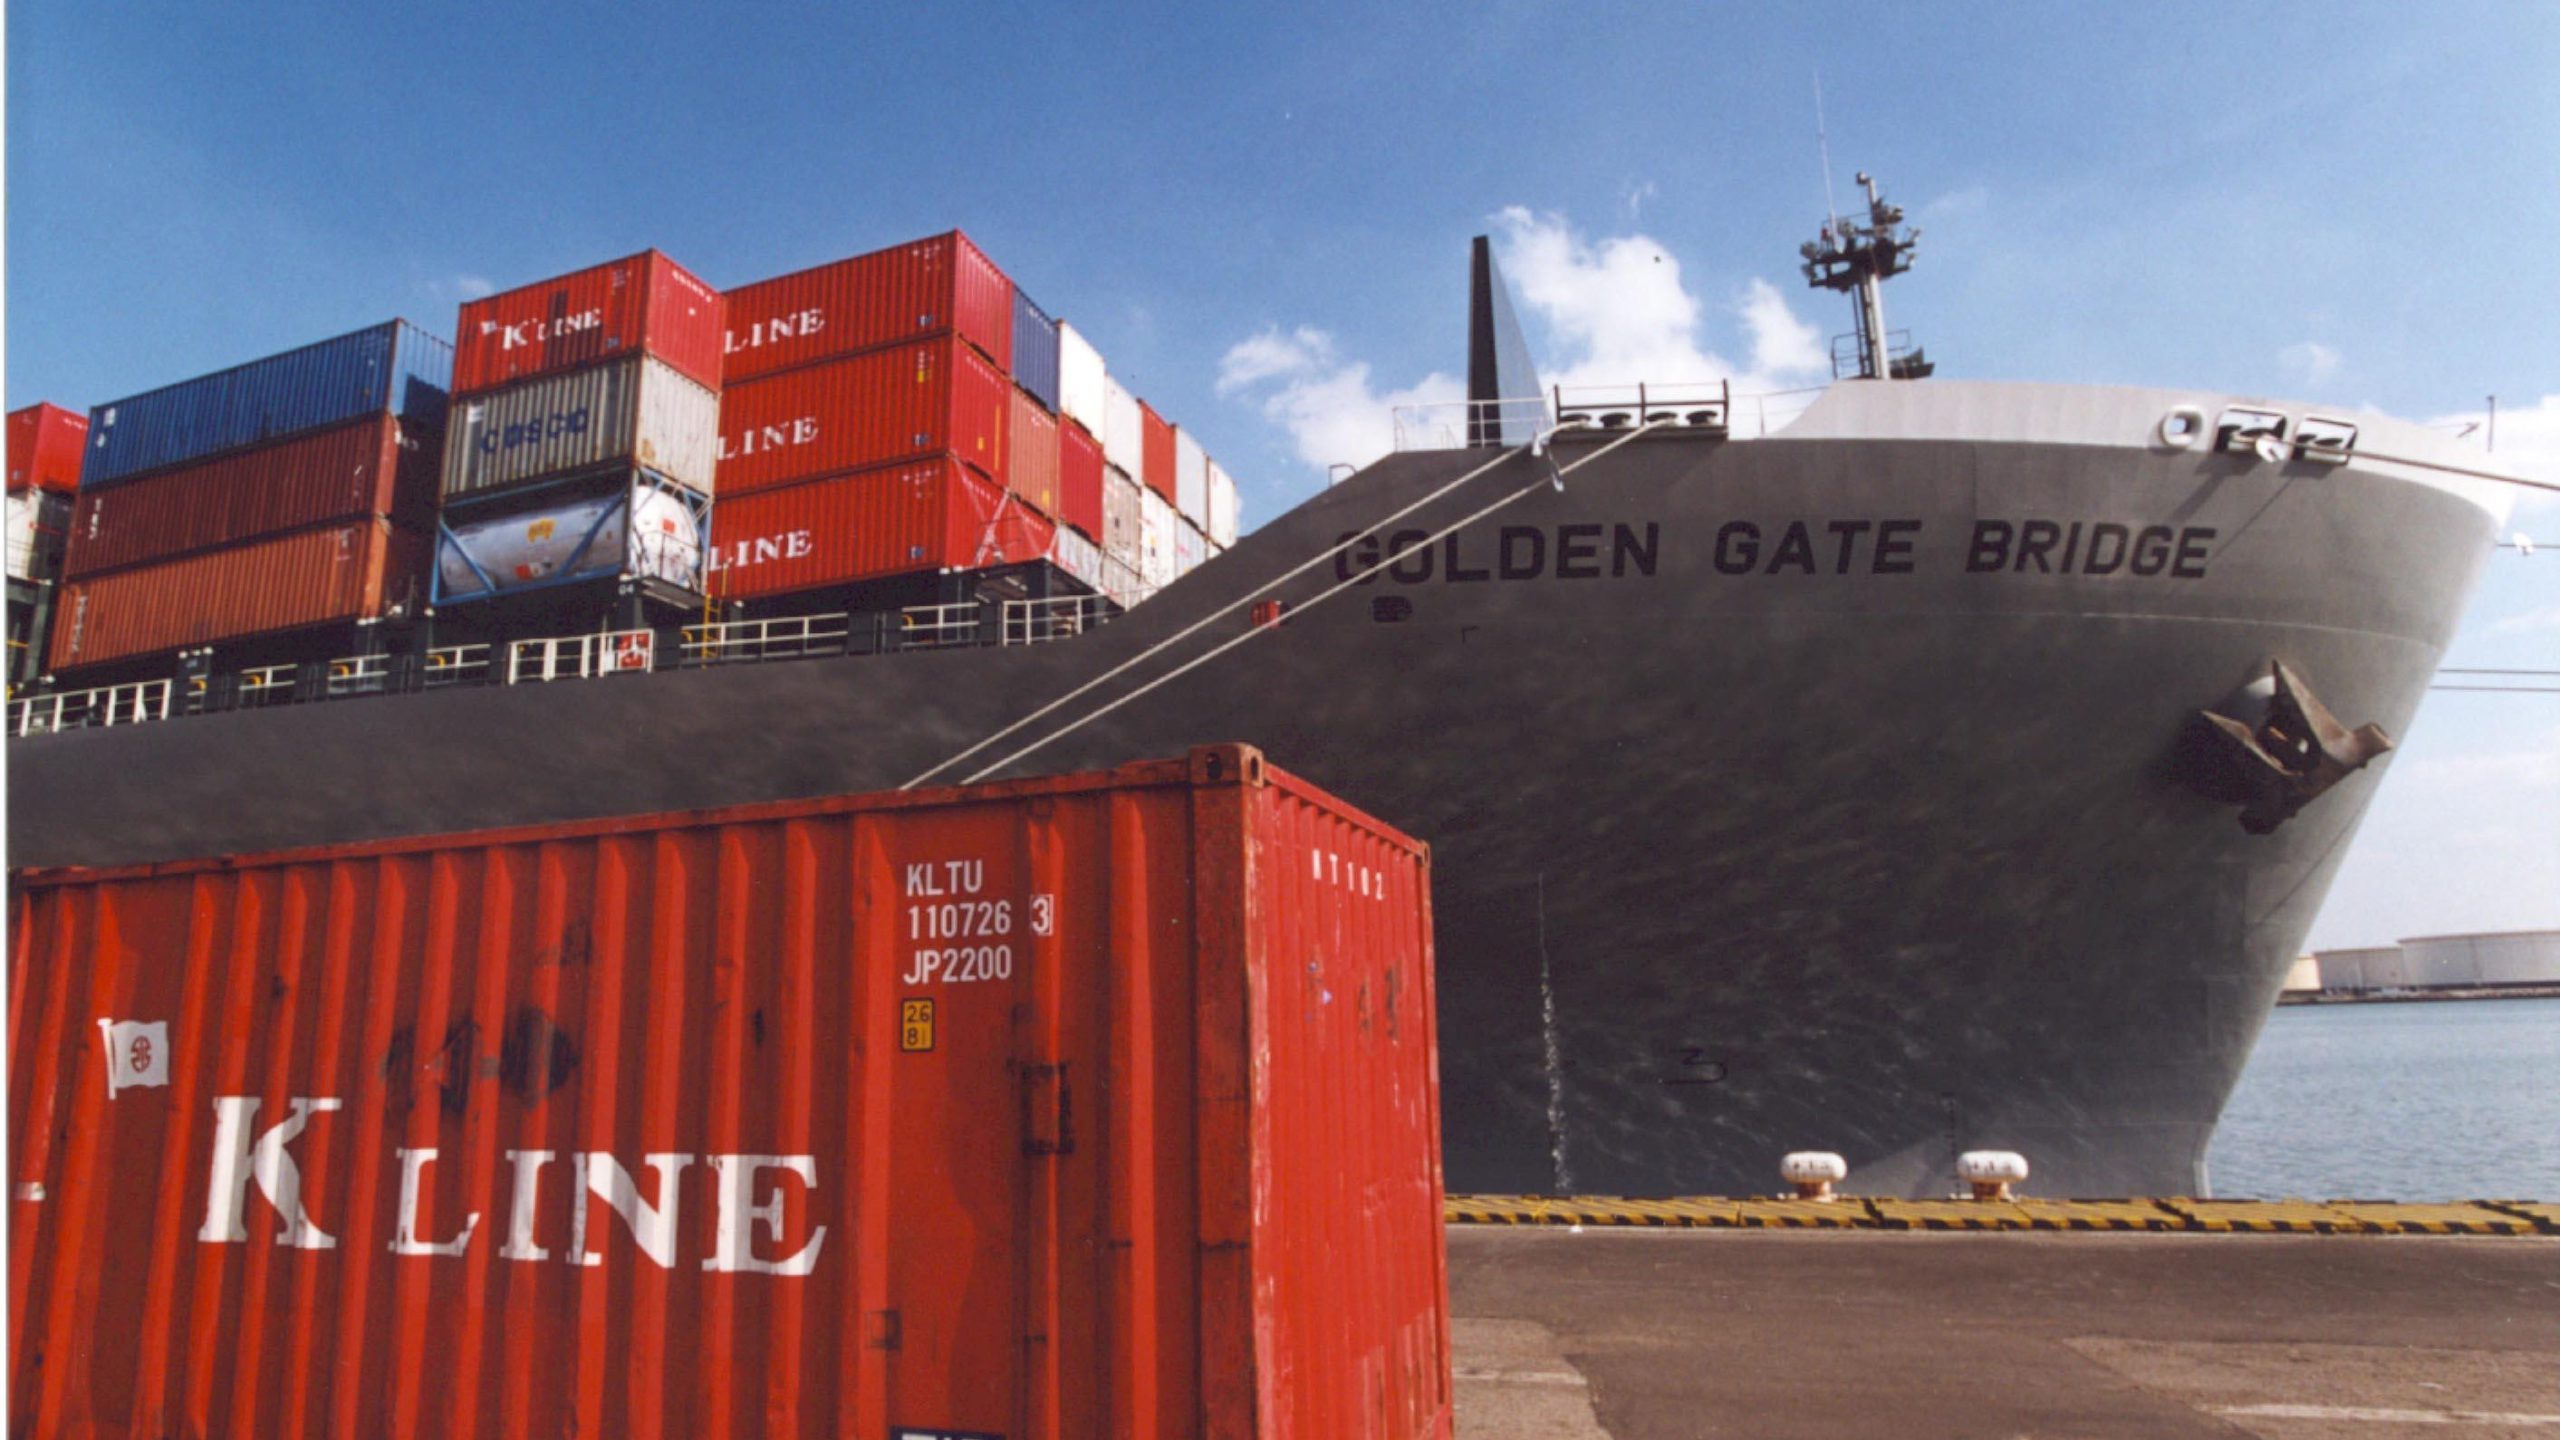 'K' Line sees profits increase despite year-on-year decrease for product logistics segment 1